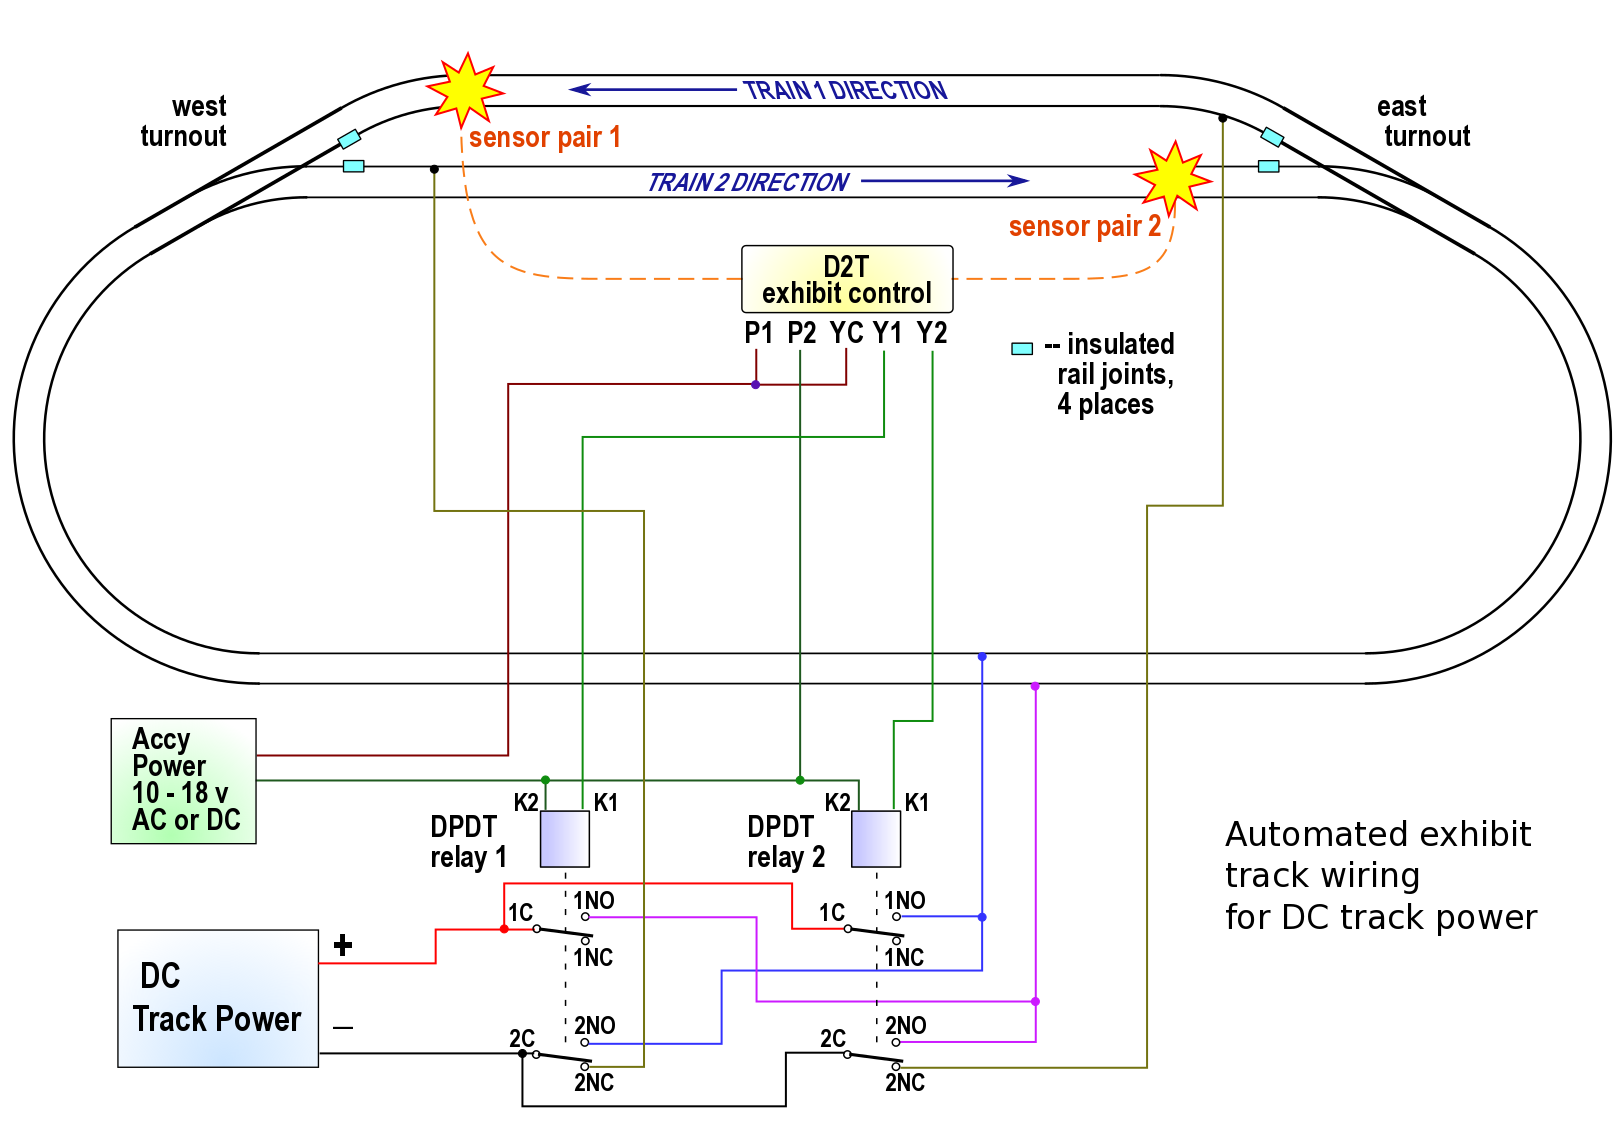 small resolution of kato wiring diagrams wiring diagram go kato ho track wiring manual e book kato wiring diagrams